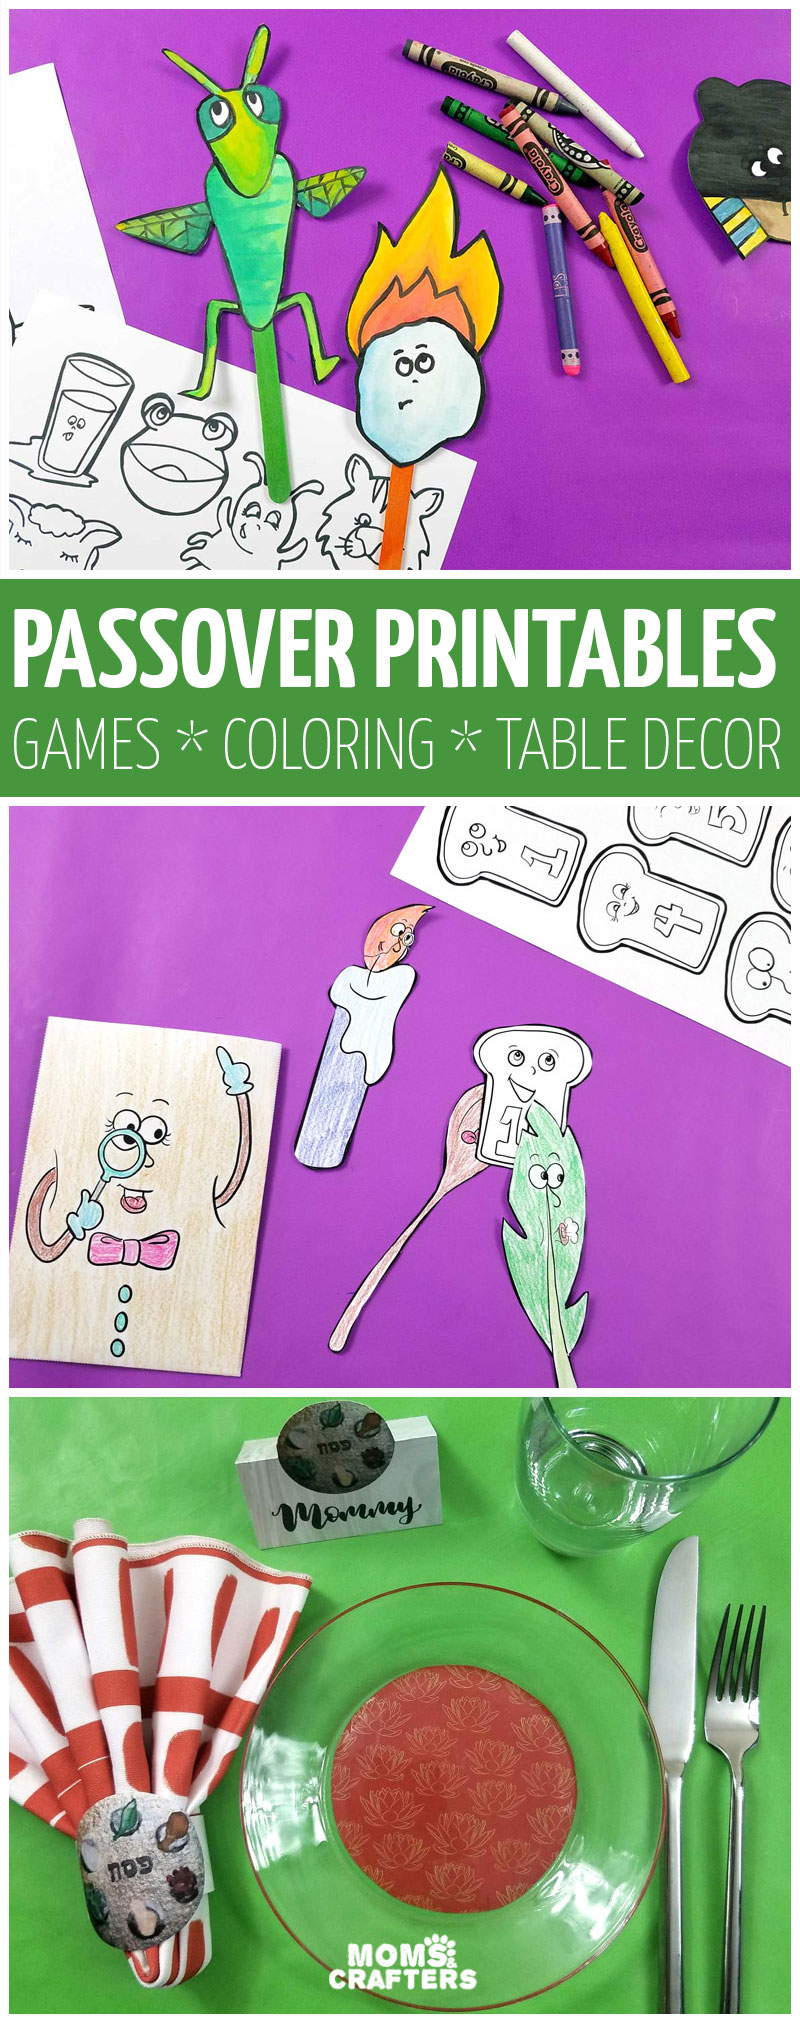 This huge list of passover printables for kids is so cool! Pesach coloring pages for kids and adults, table decorations and seder tablescape ideas and so many games and activities for kids.